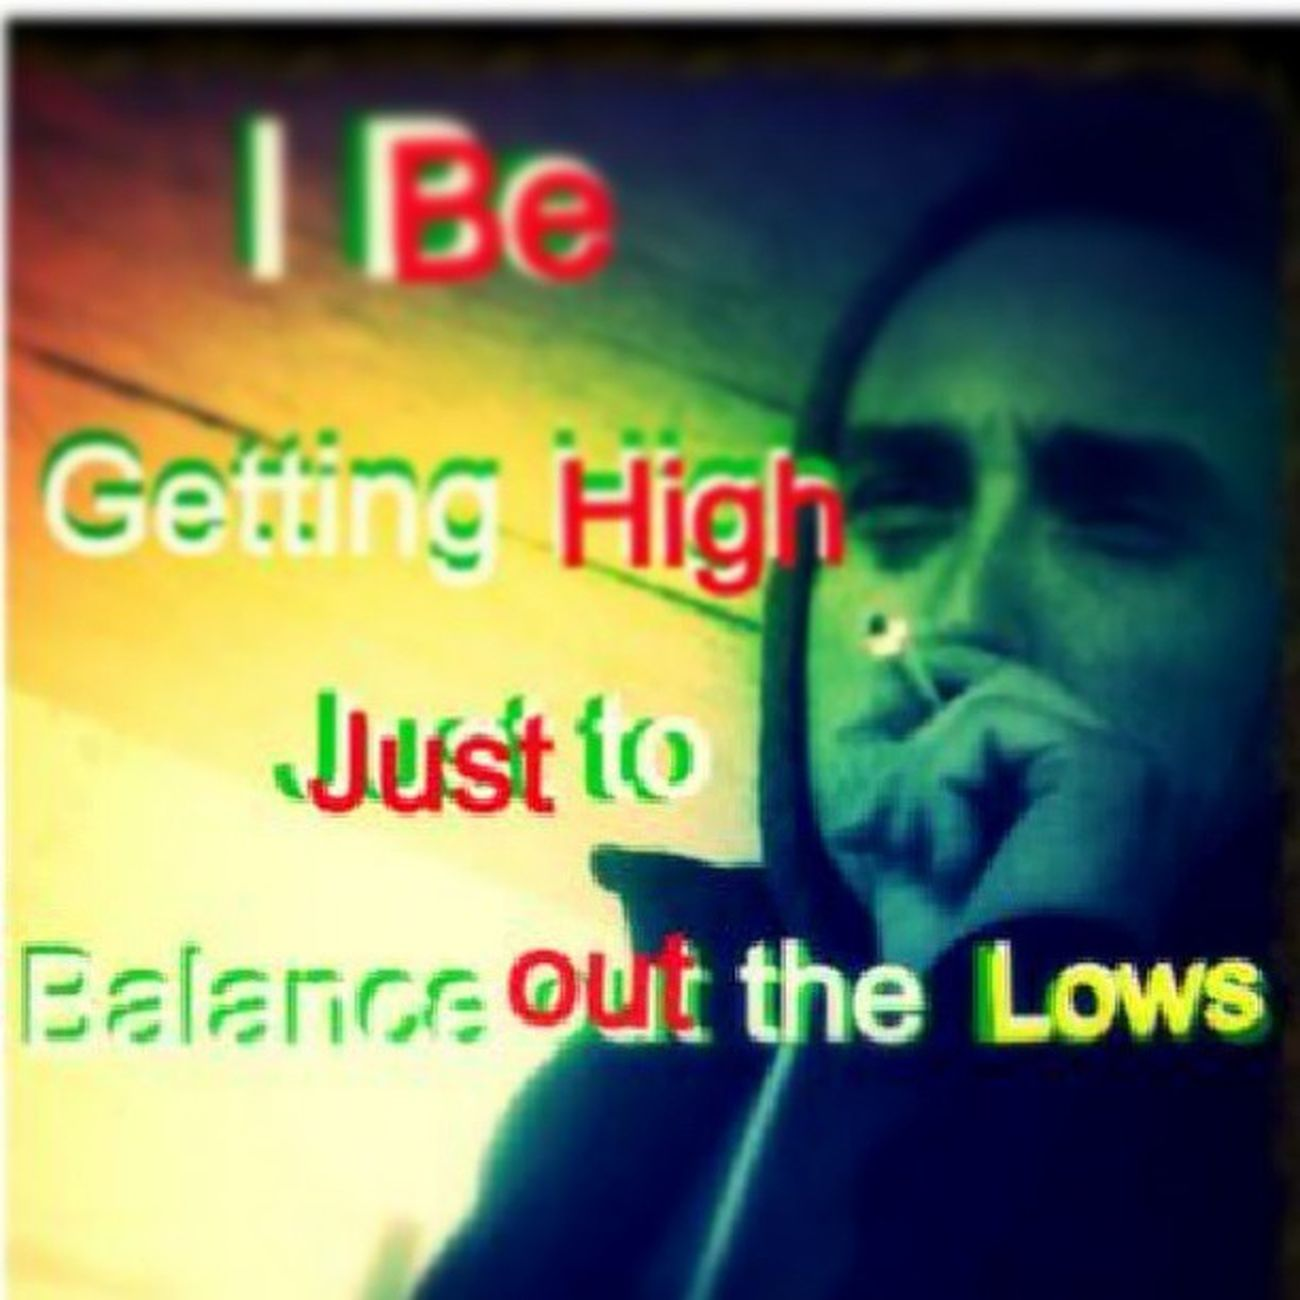 AlwaysGettingMedicated GetHighStayHigh Cannabisbook Burn1Burn1Burn1